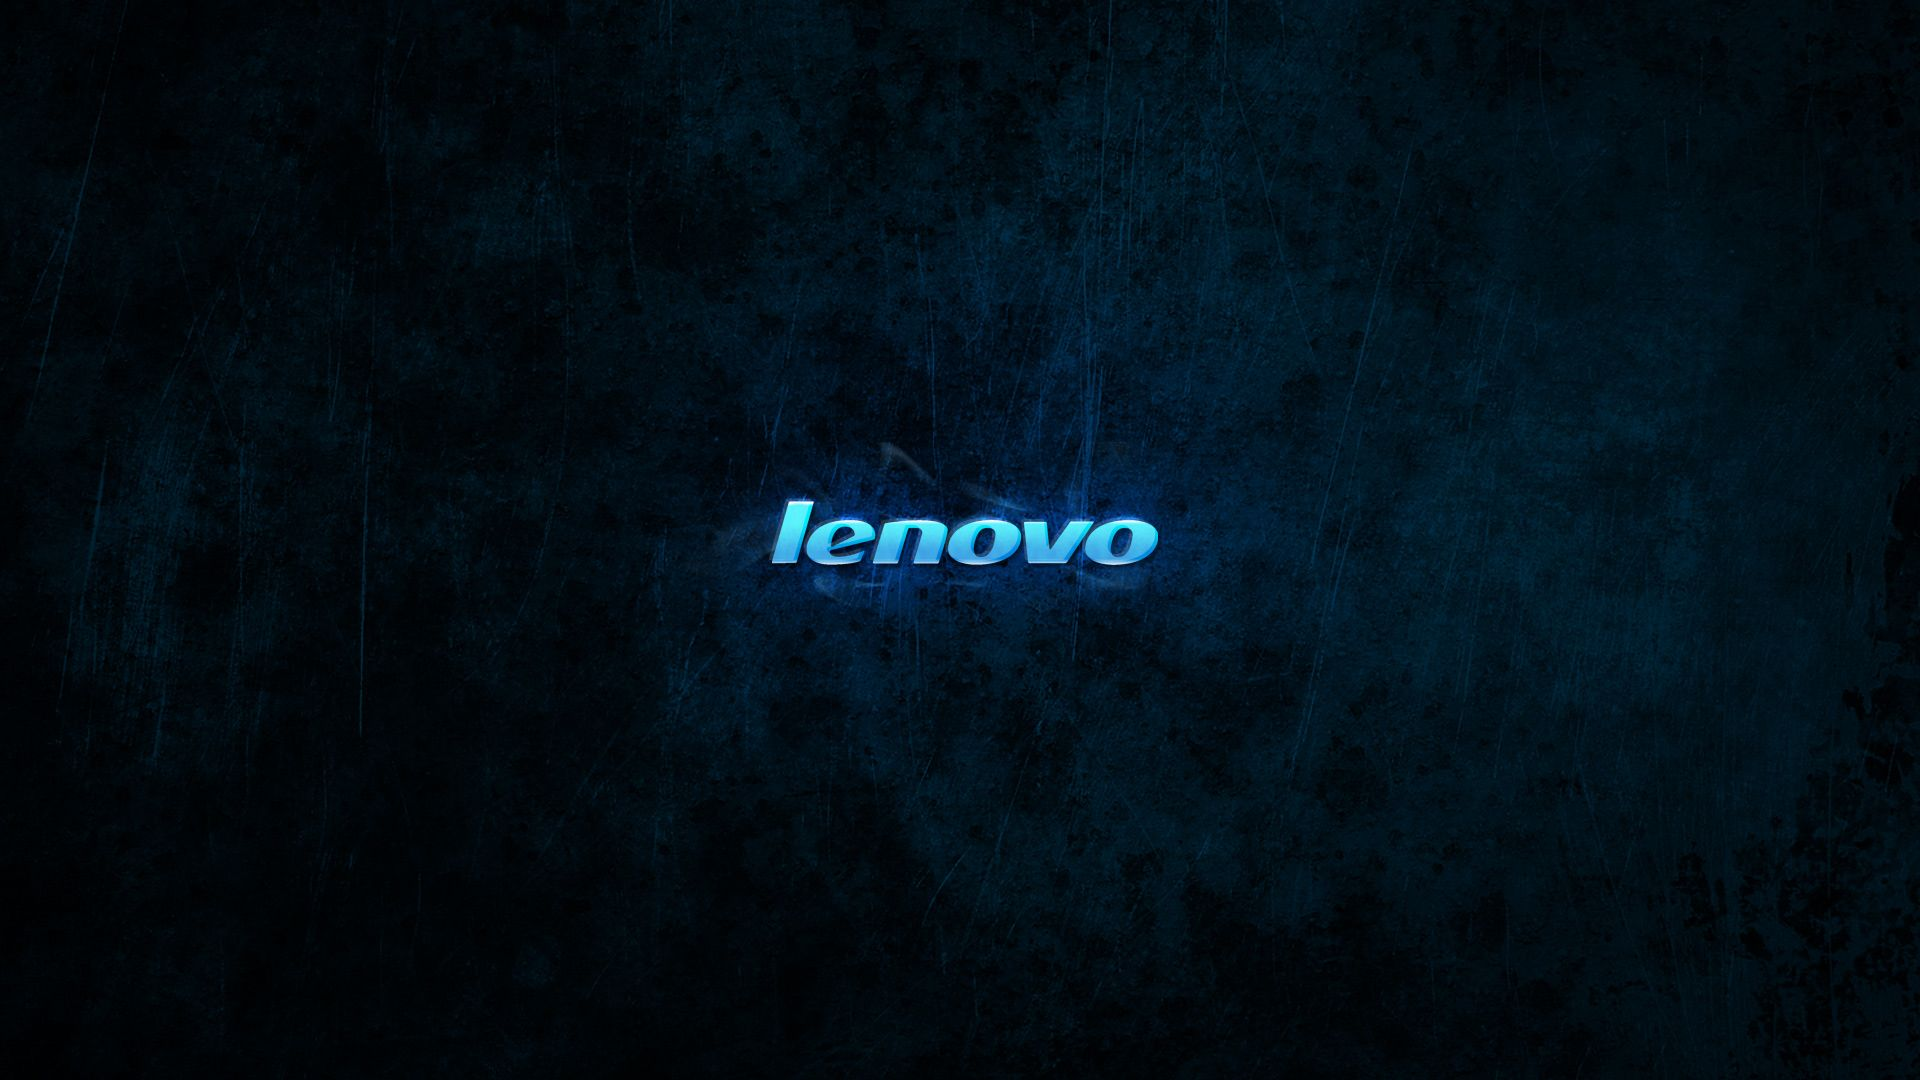 lenovo wallpaper theme 1024×768 lenovo windows 7 wallpapers (39